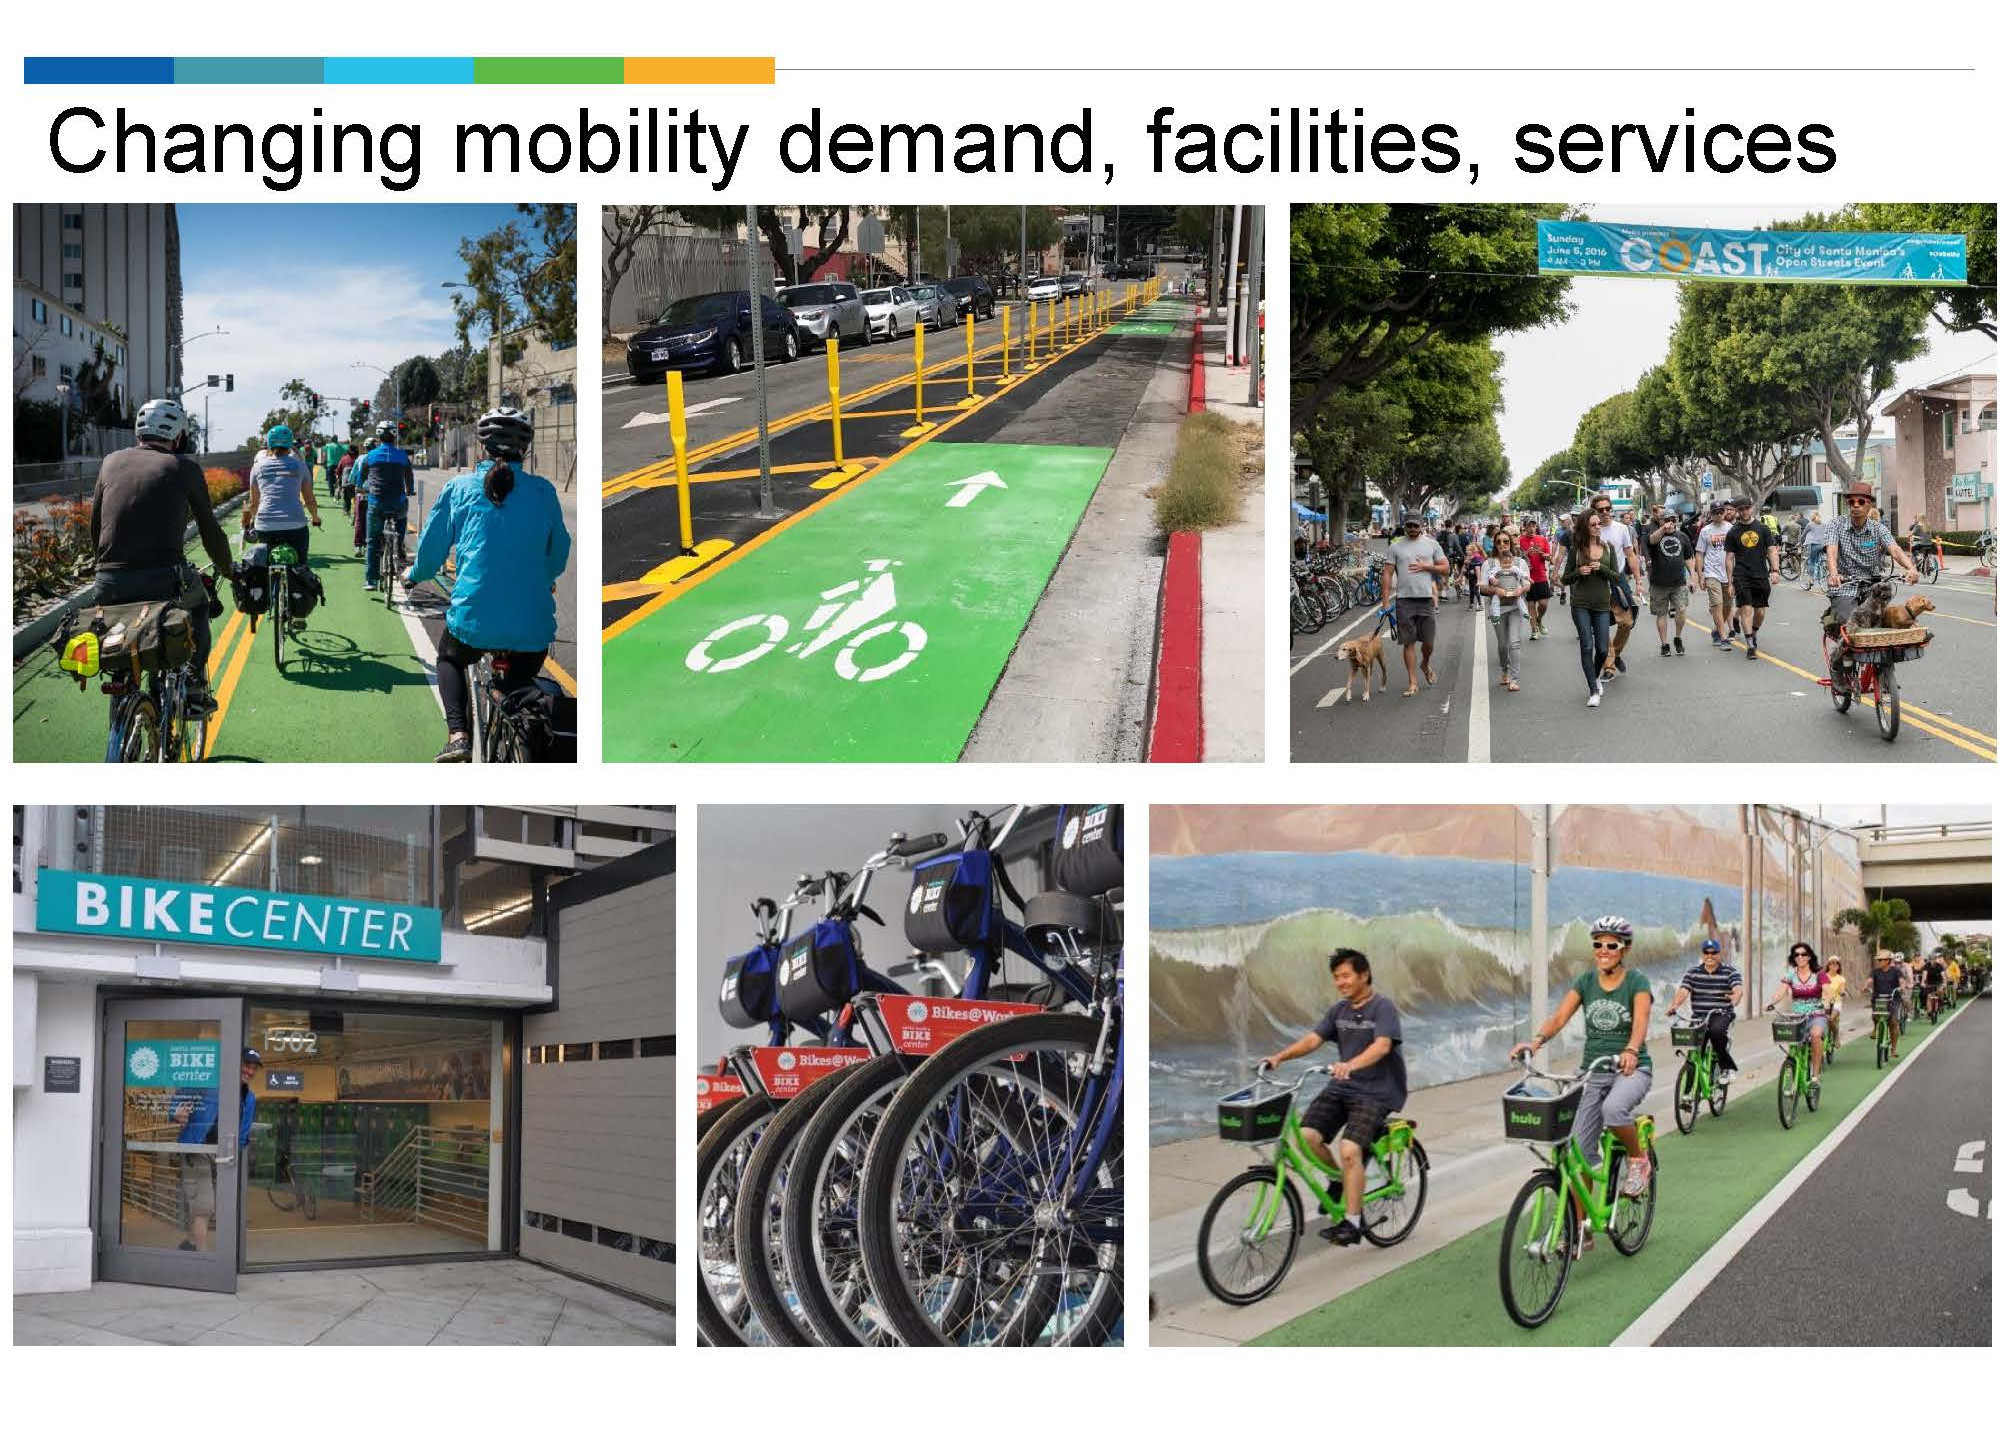 ITE_SharedMobility_20190131_Page_02